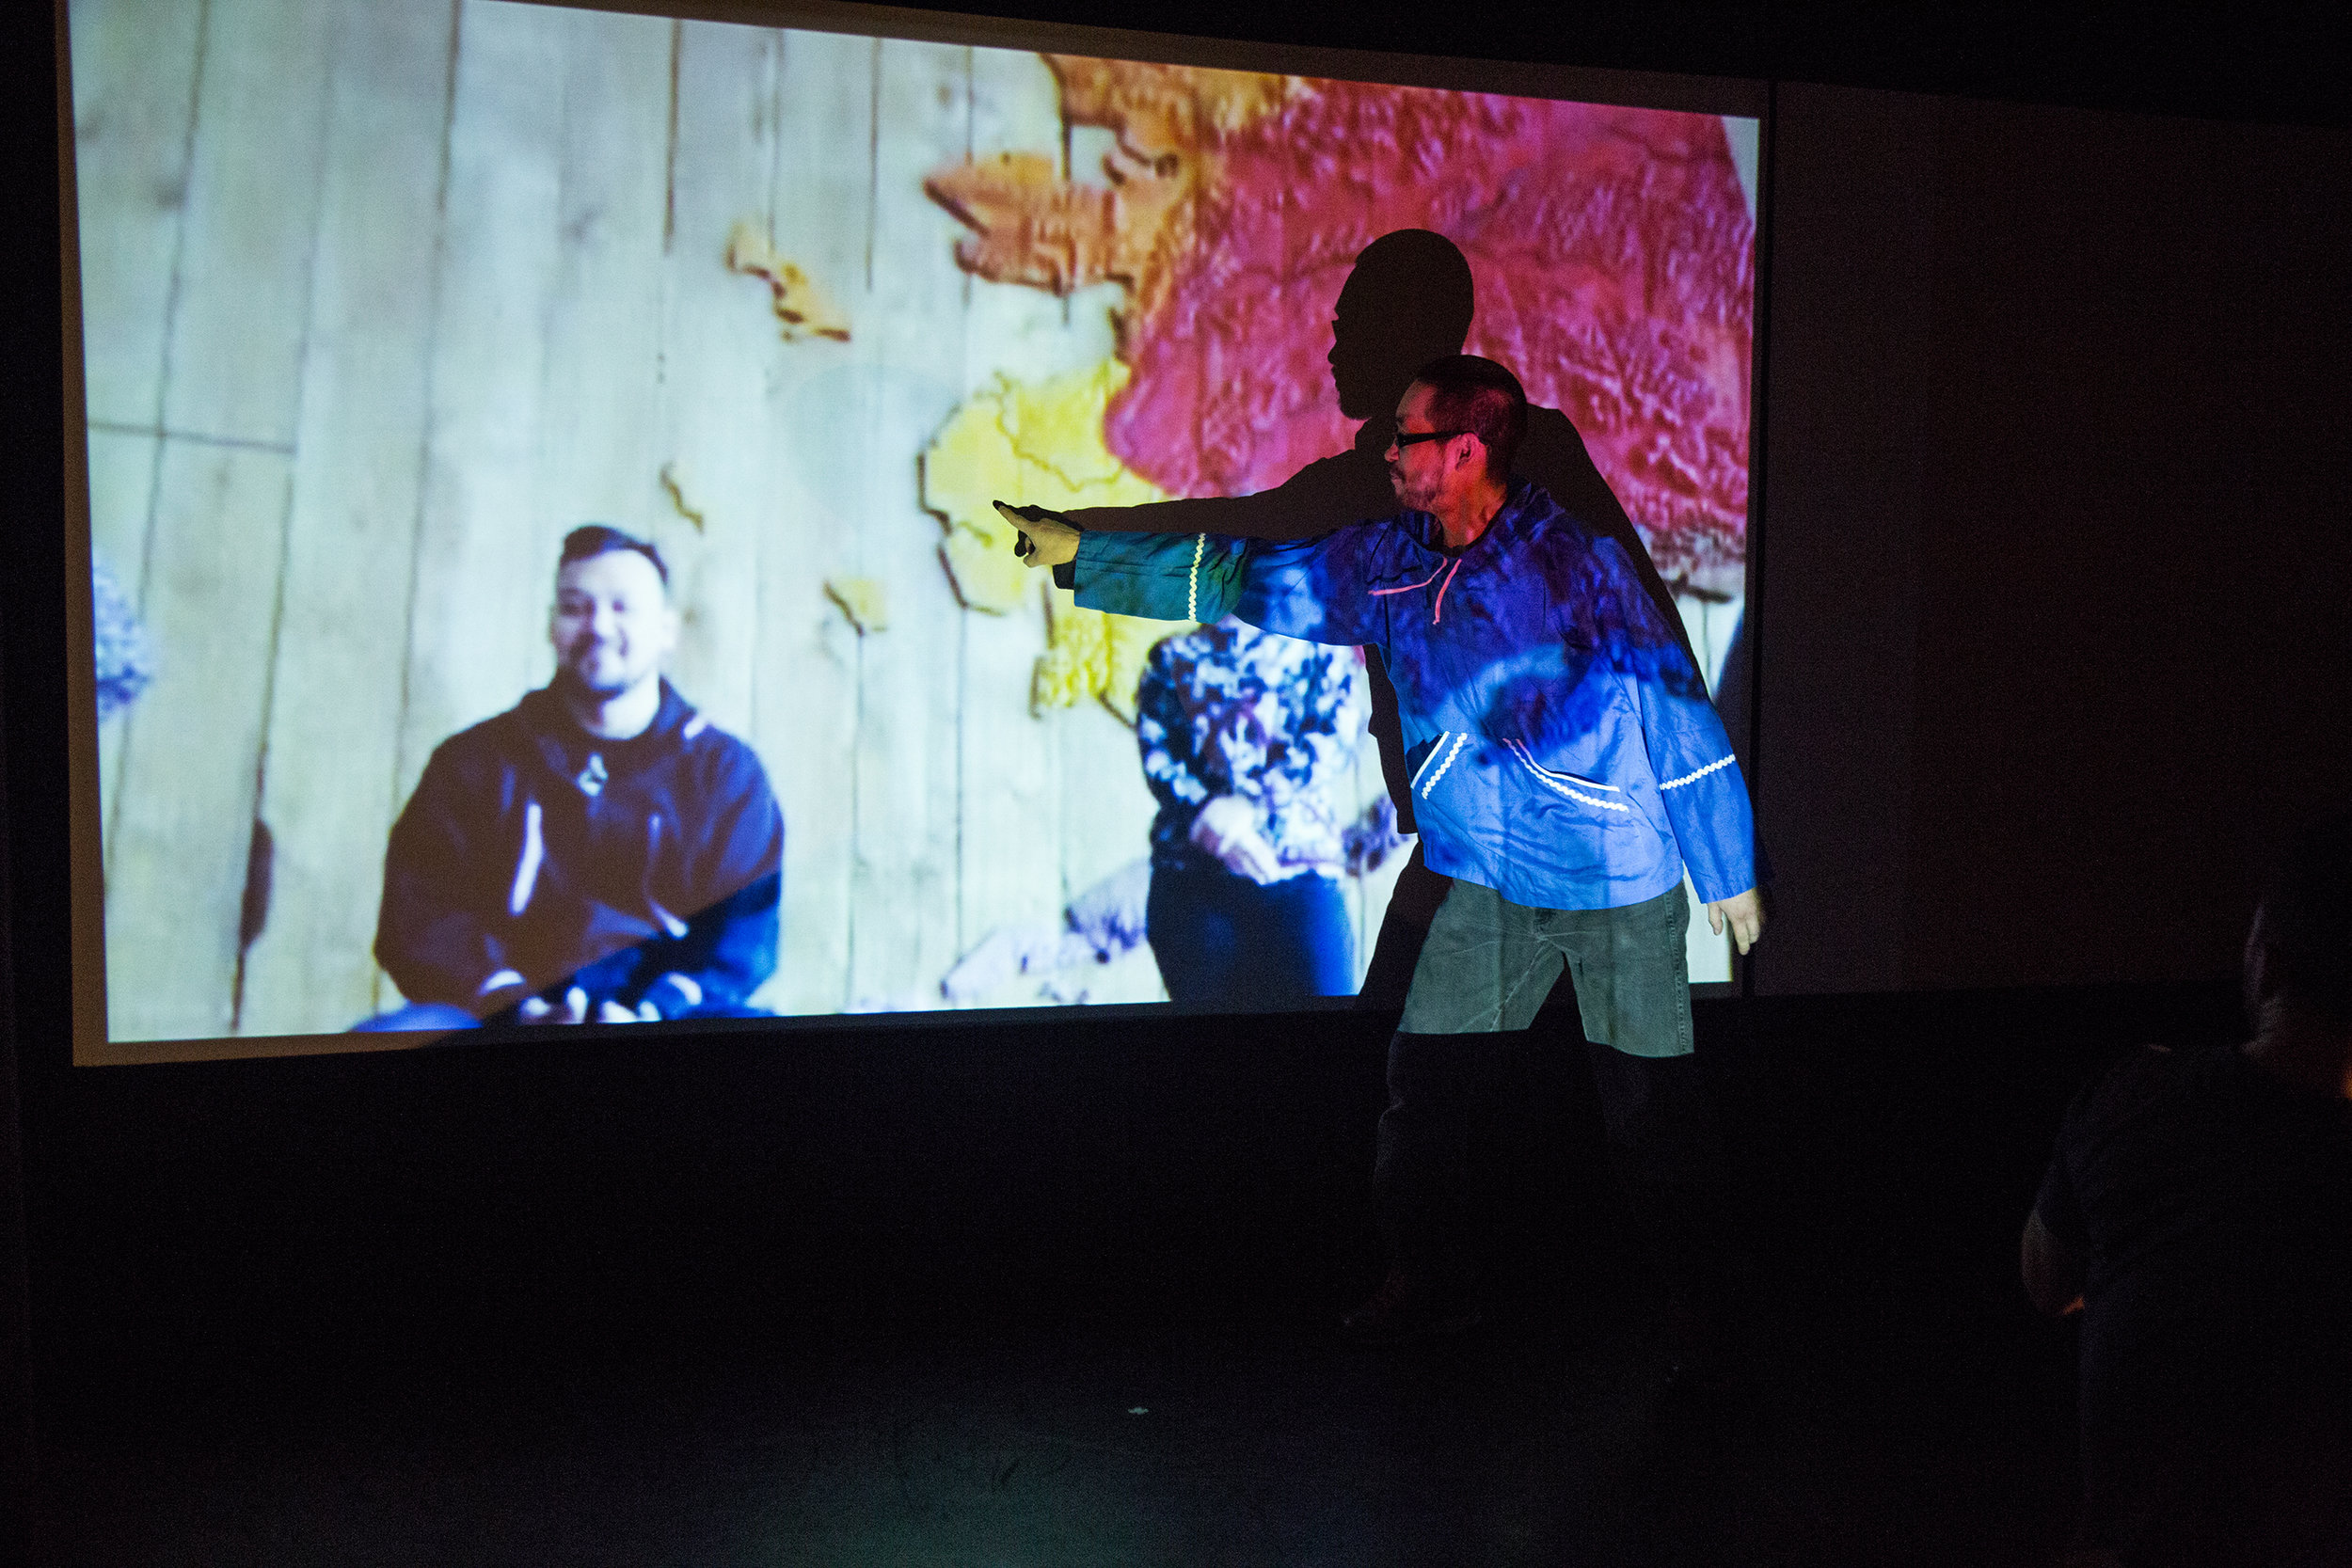 Akmani | Meeting Through Story, Puppetry, & Dance